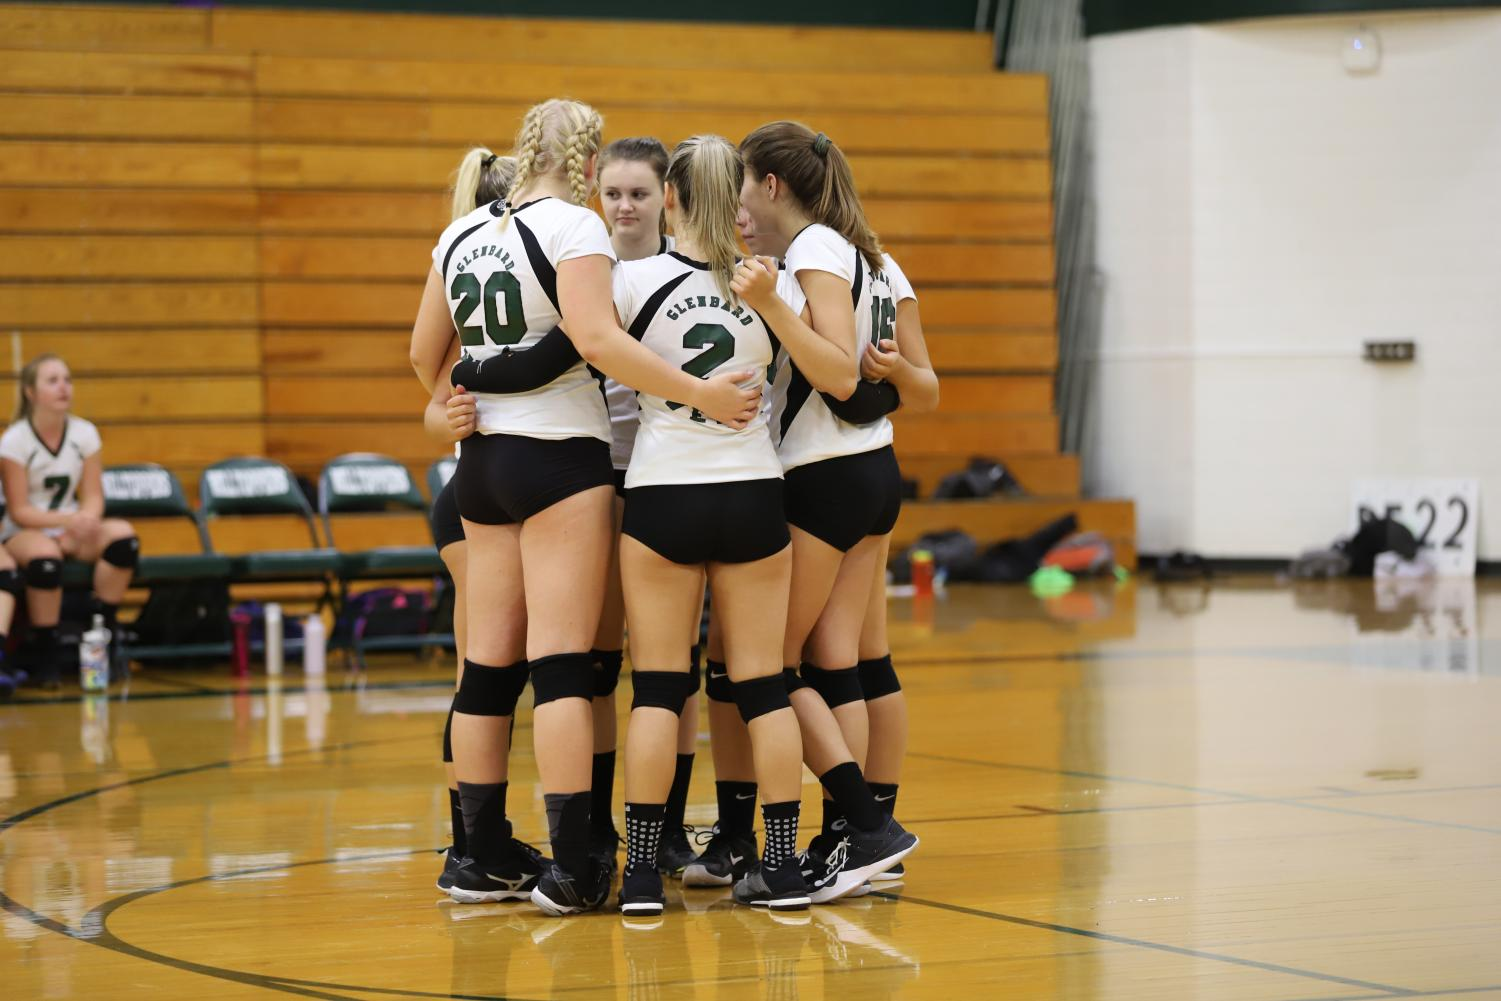 The+team+huddles+on+the+court+before+the+match+begins.